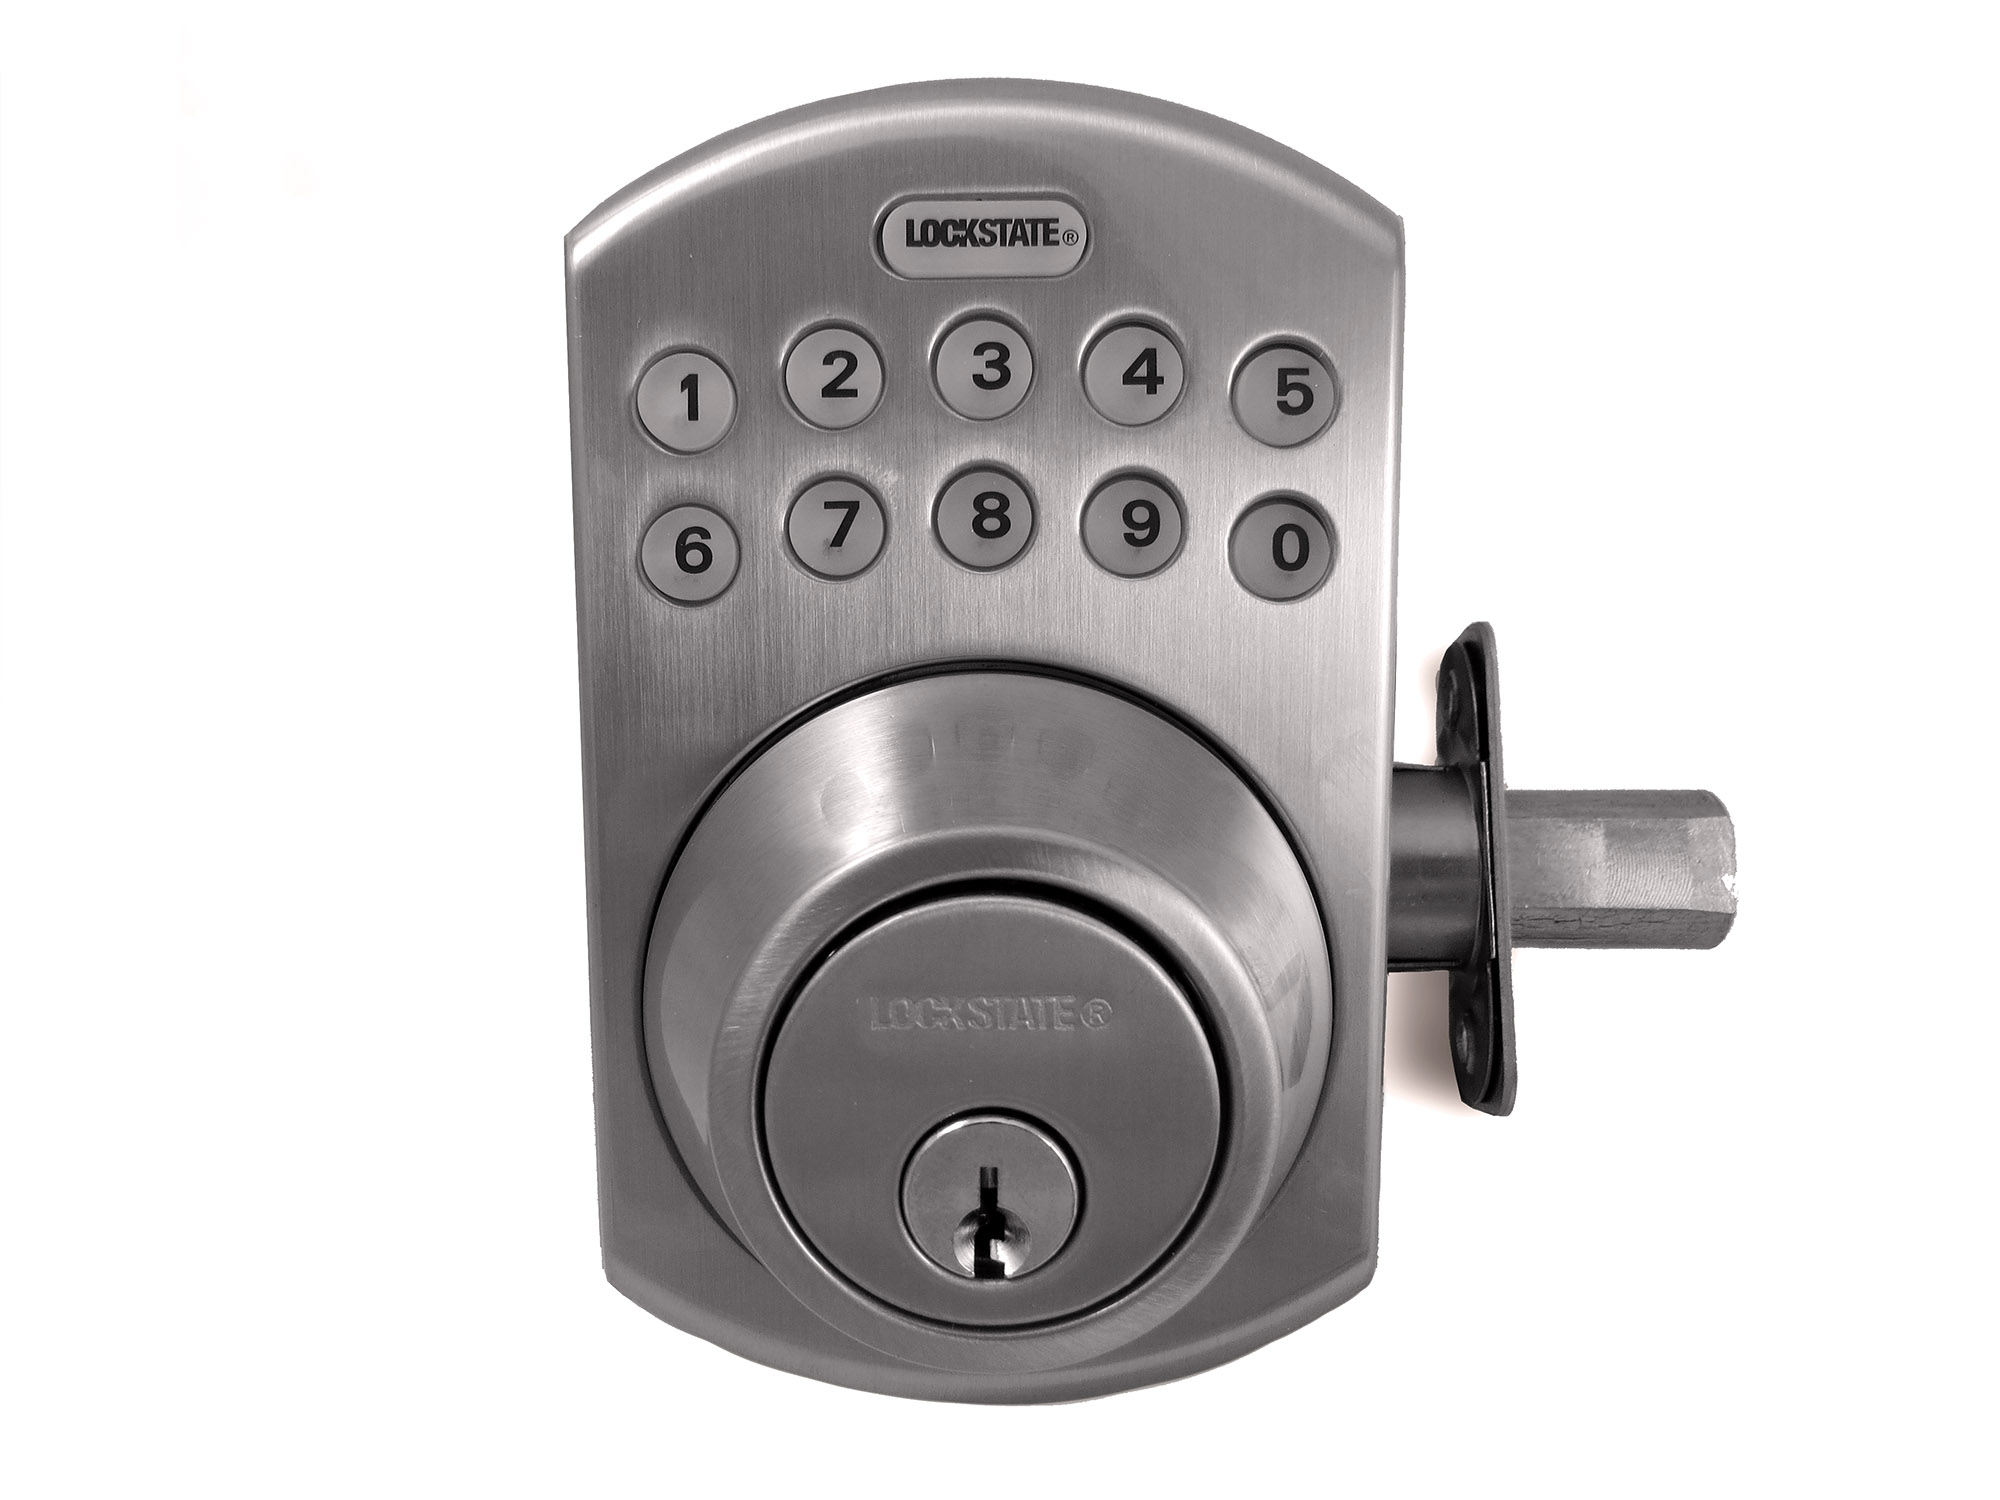 LockState RemoteLock WiFi Deadbolt 5i-B-DB